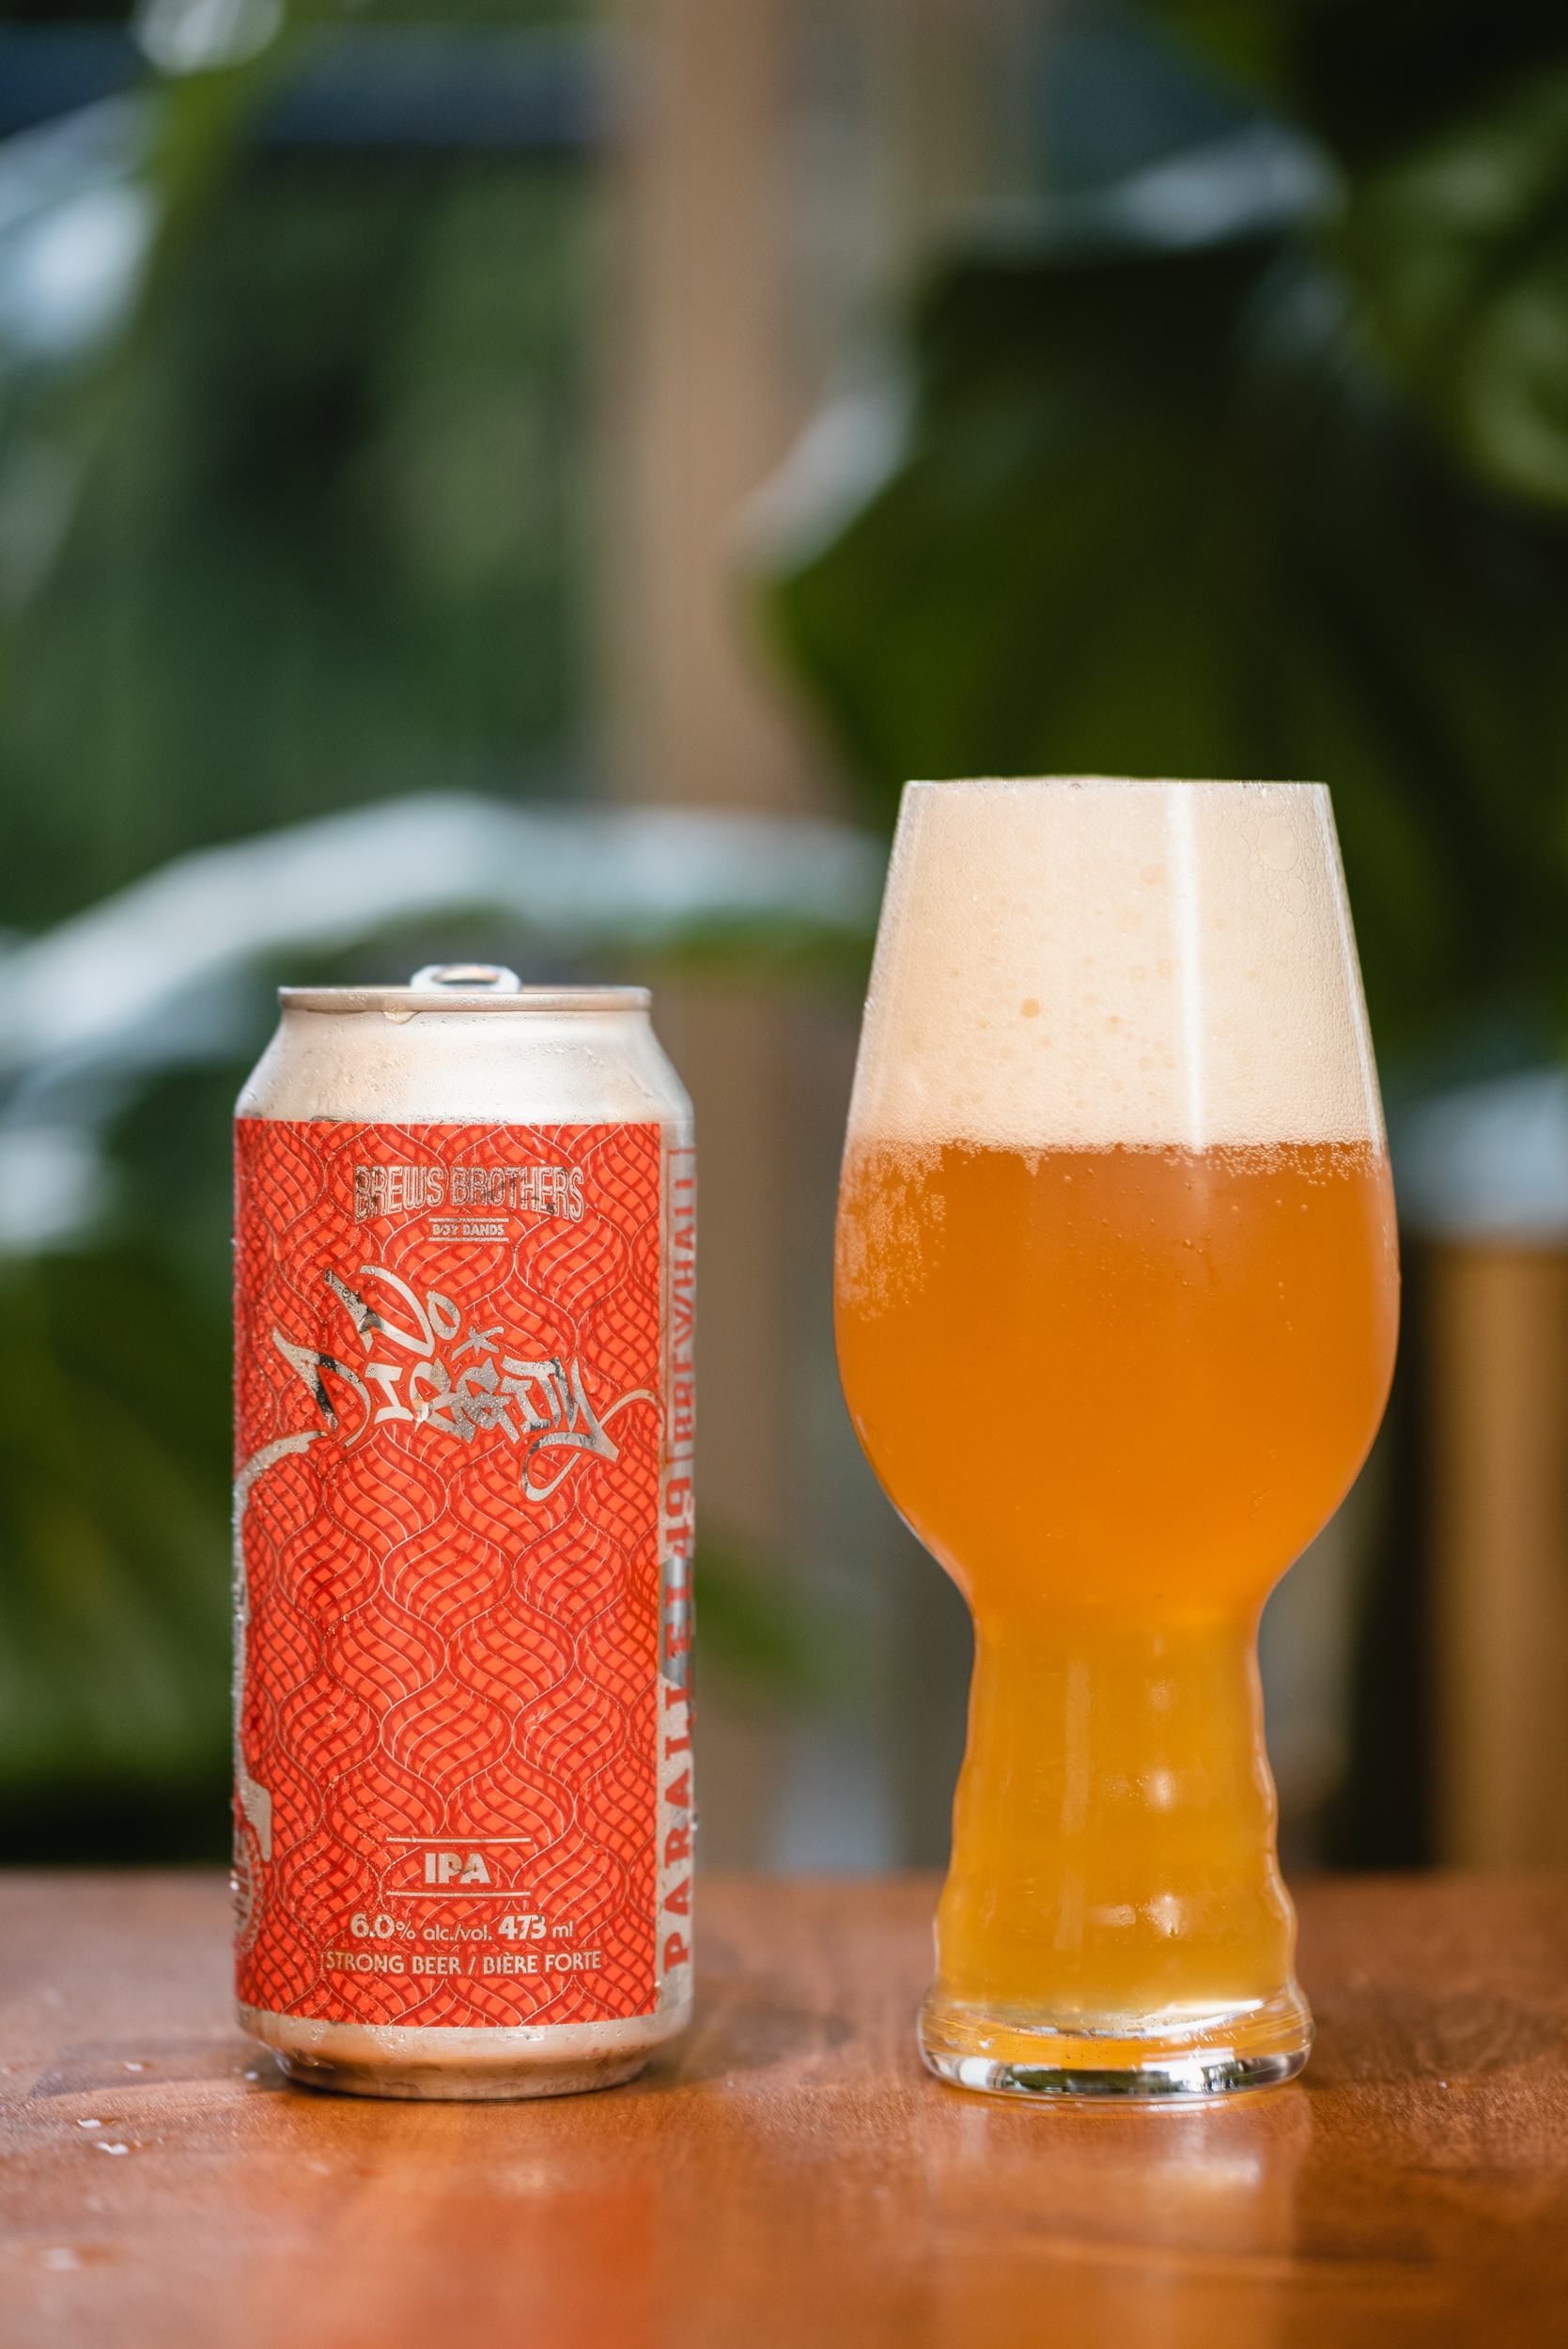 Parallel 49 Brewing No Diggity hazy IPA in glass